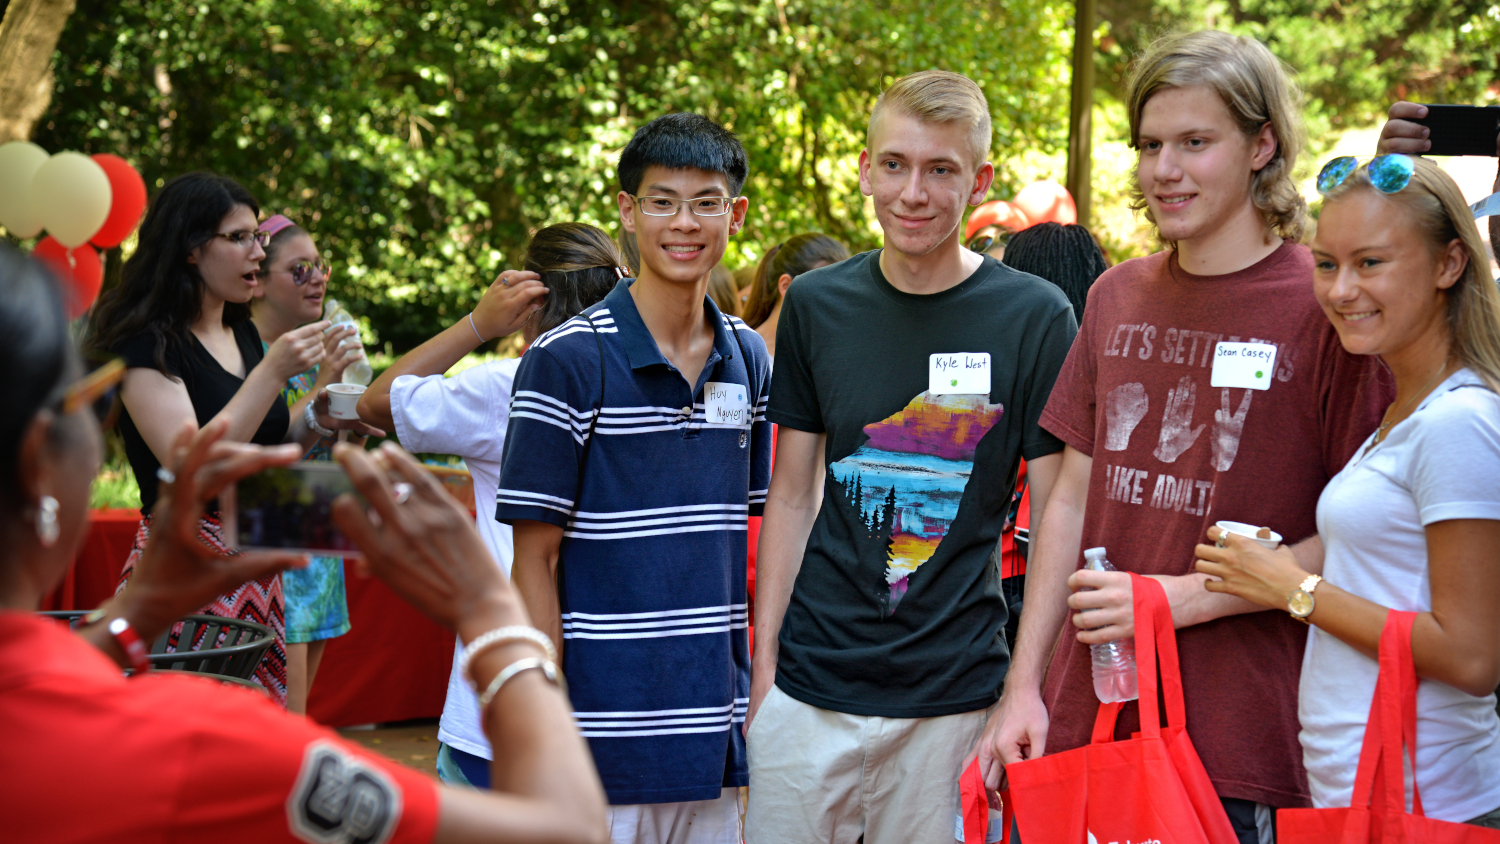 College of Education students pose for a photo during Wolfpack Welcome Week celebration outside Poe Hall.